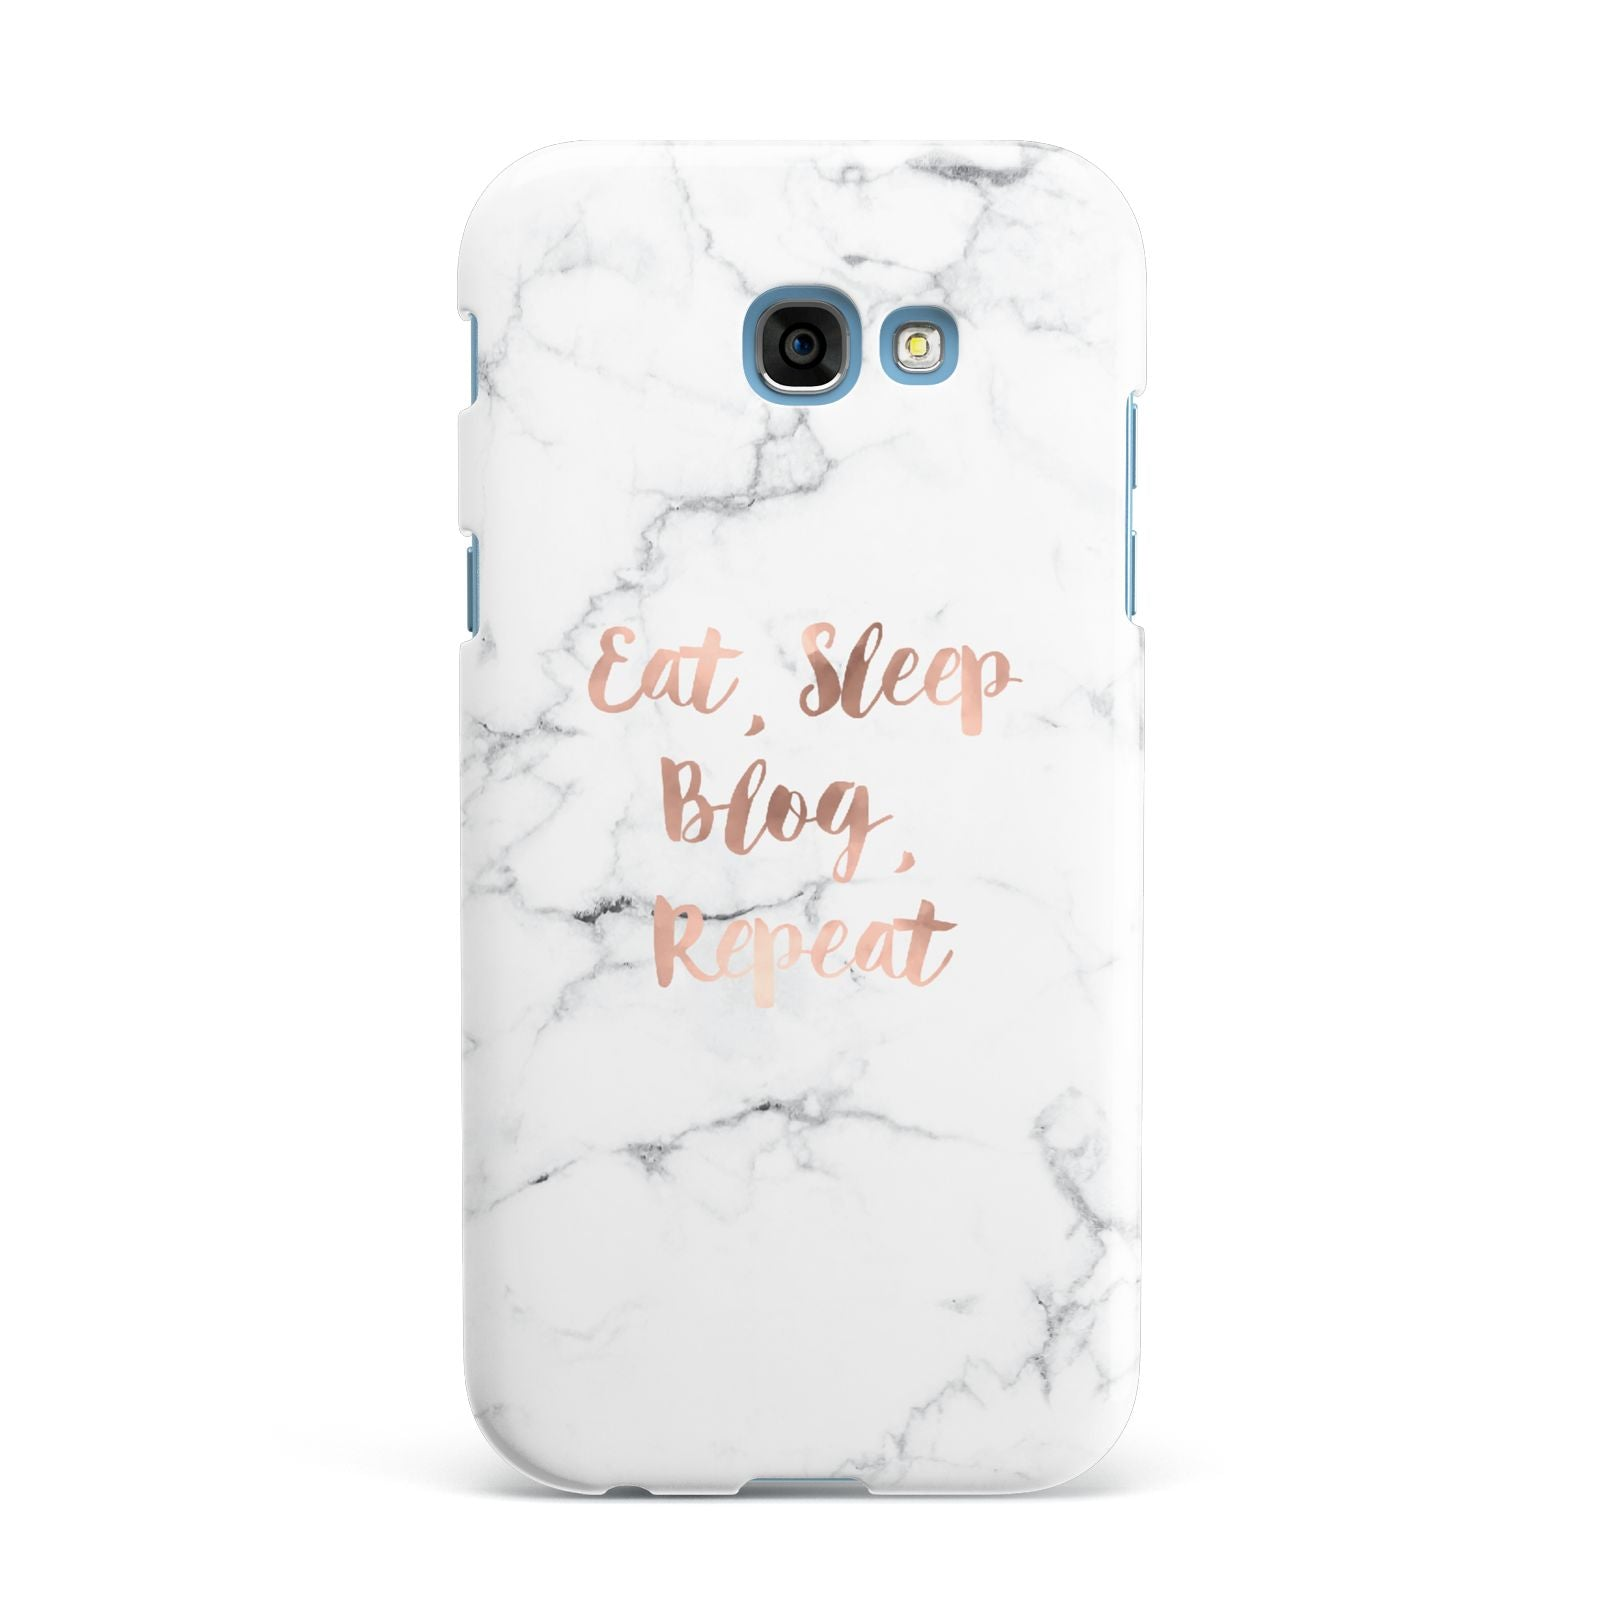 Eat Sleep Blog Repeat Marble Effect Samsung Galaxy A7 2017 Case